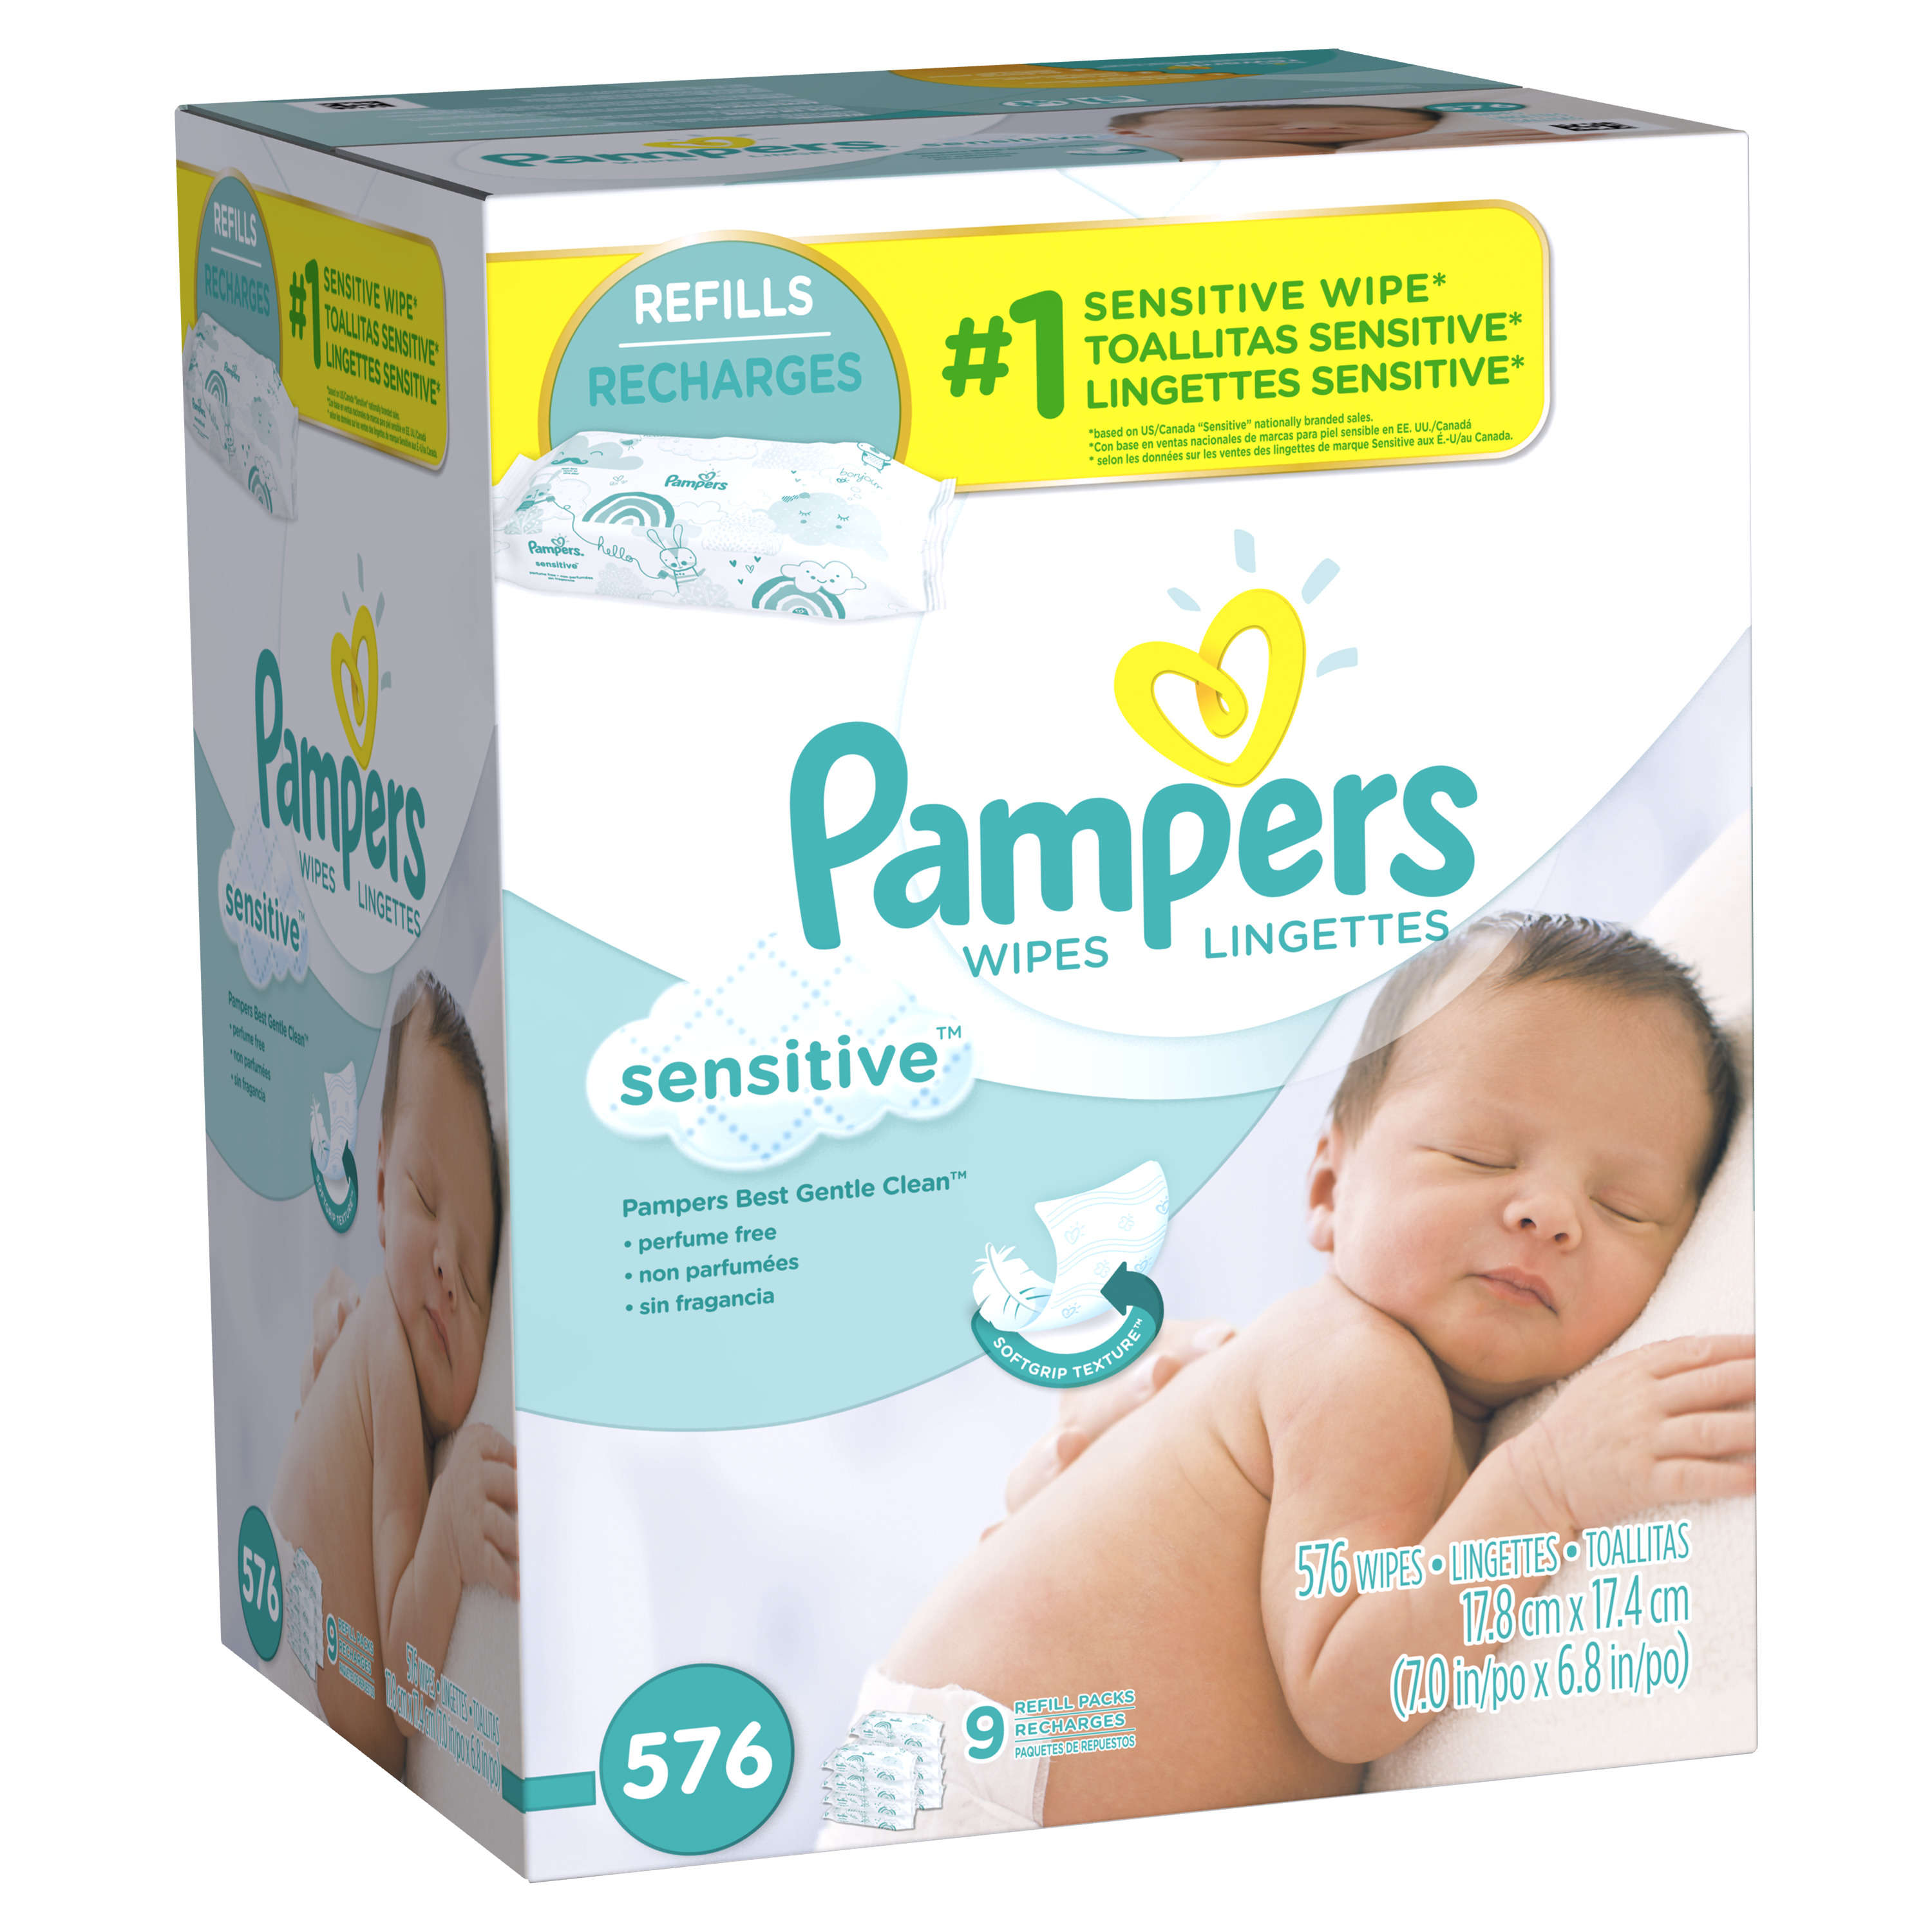 Pampers Baby Wipes Sensitive 9X Refill 576 count